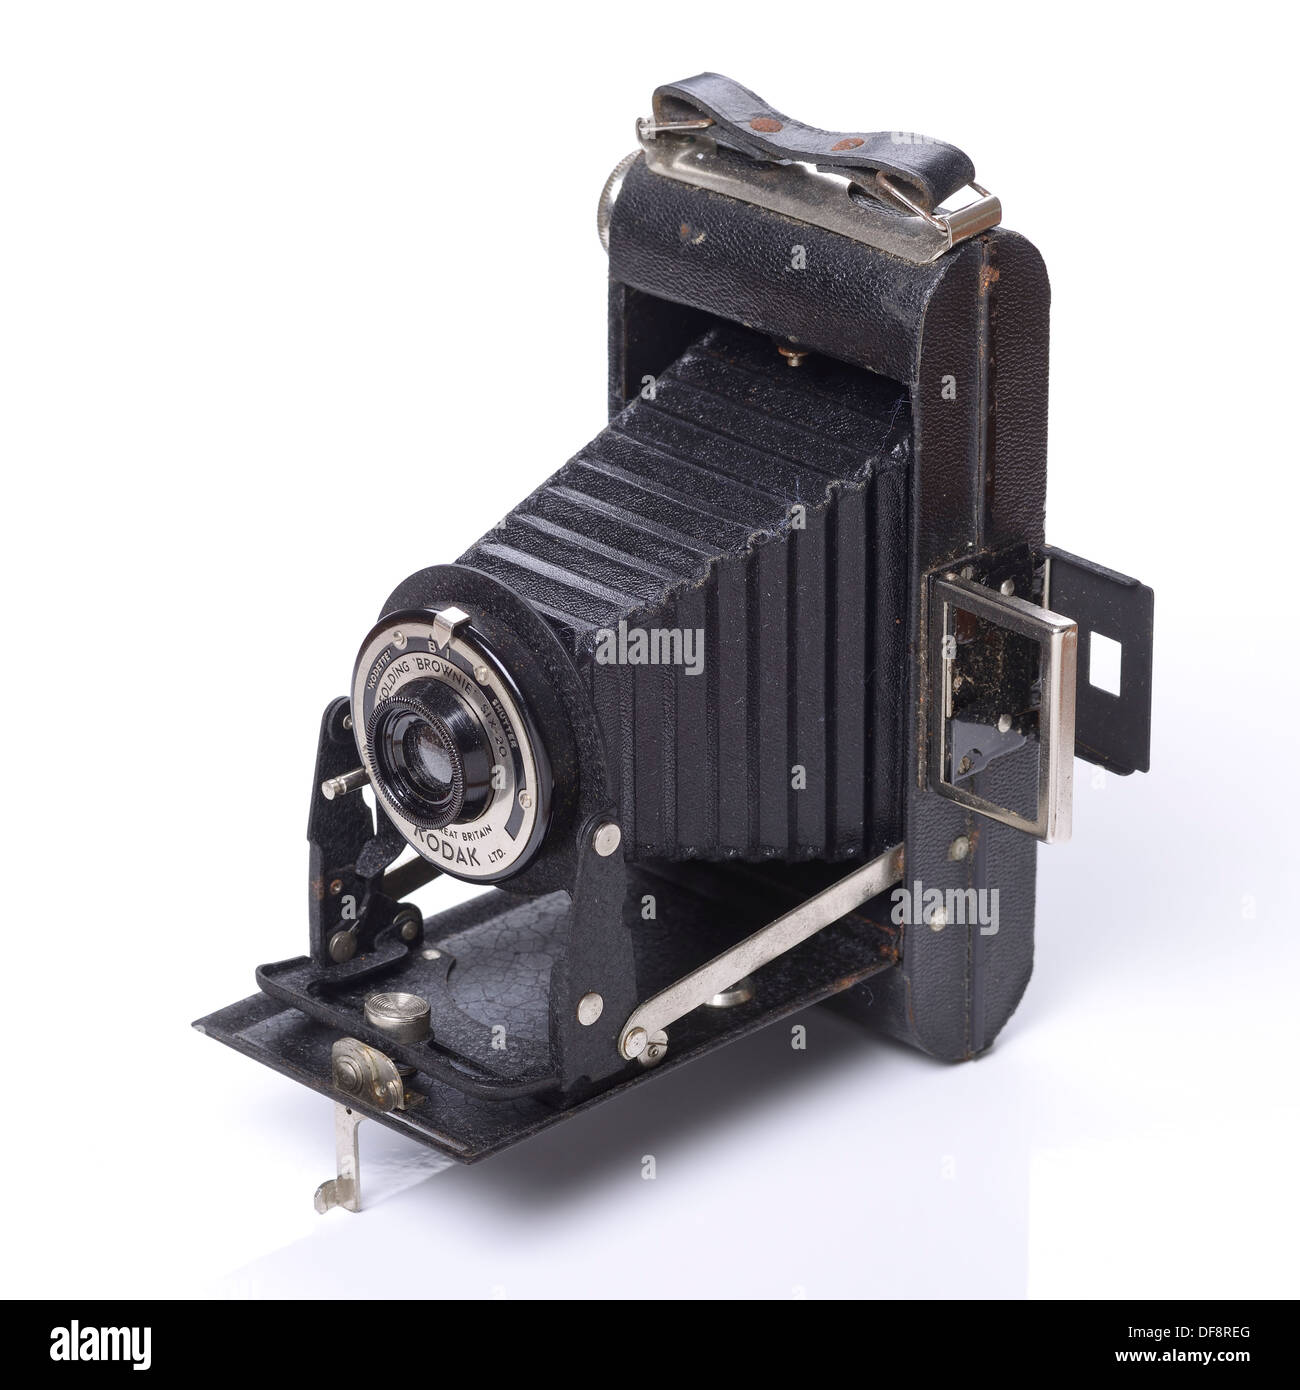 Old retro vintage Kodak Folding Brownie camera - Stock Image